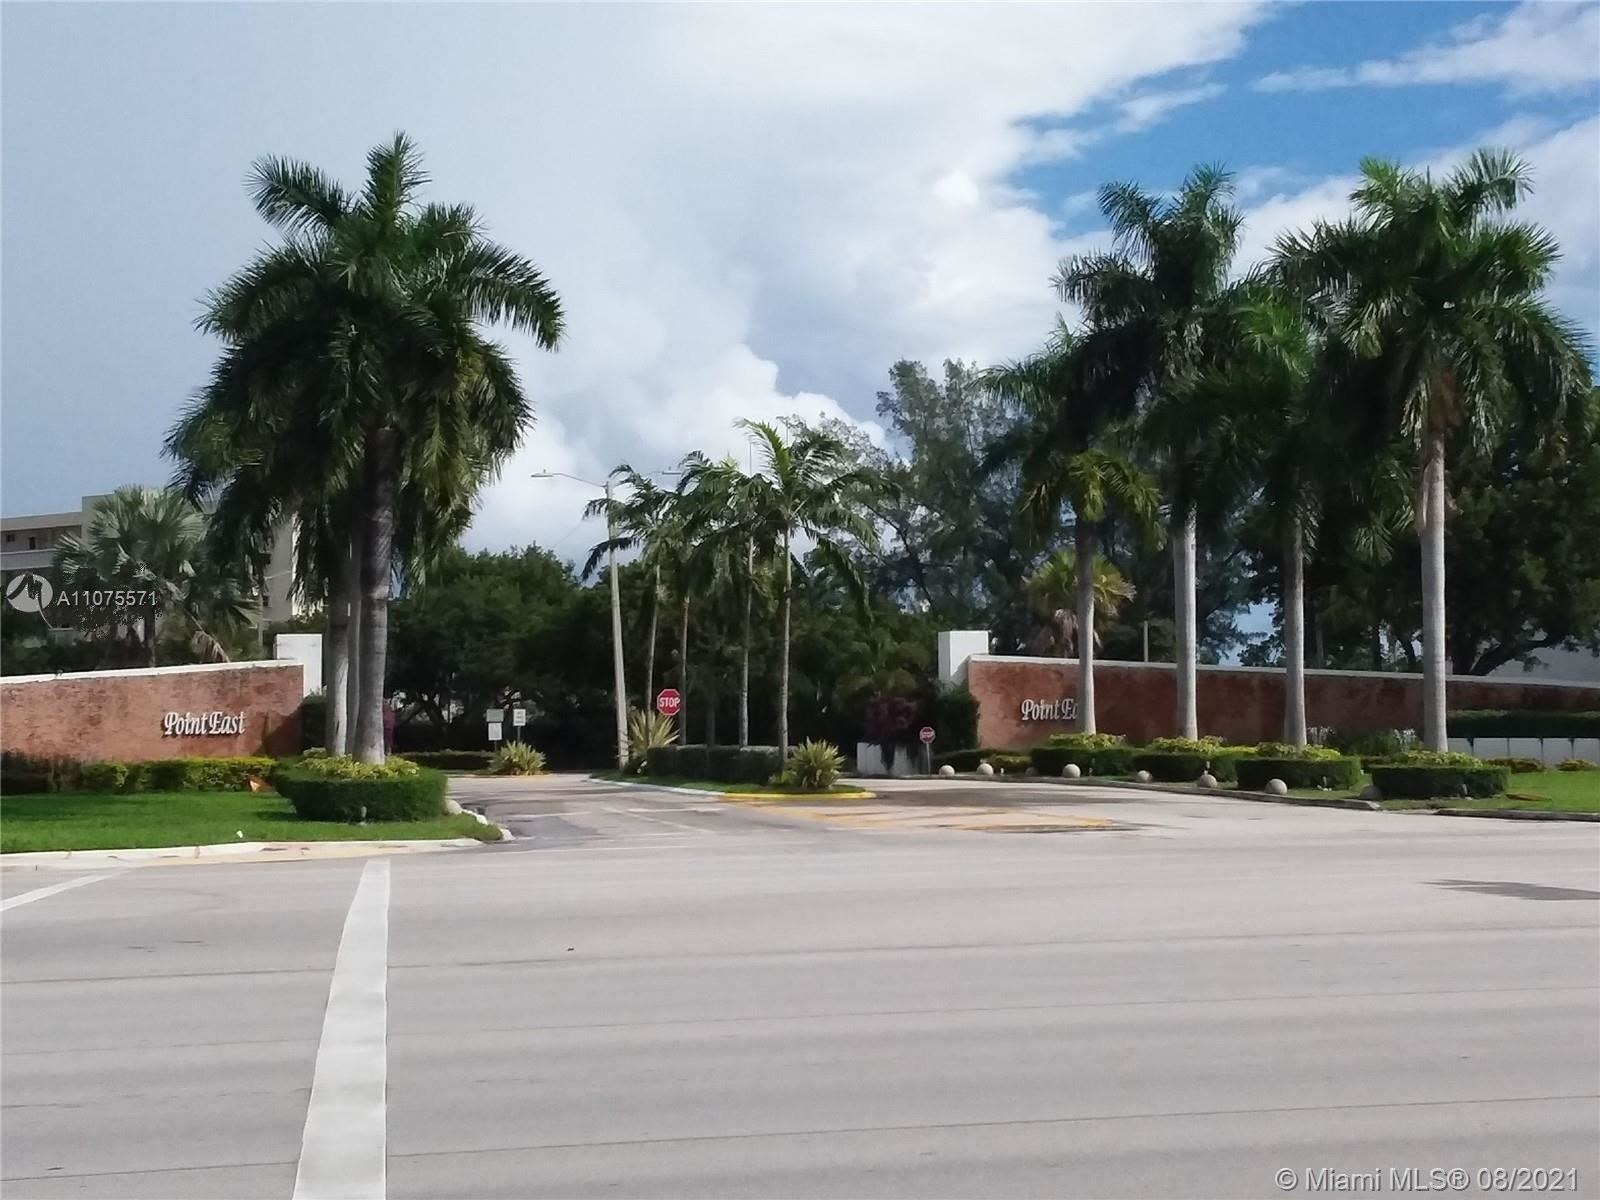 Photo of 2905 Point East Dr #L110, Aventura, FL 33160 (MLS # A11075571)